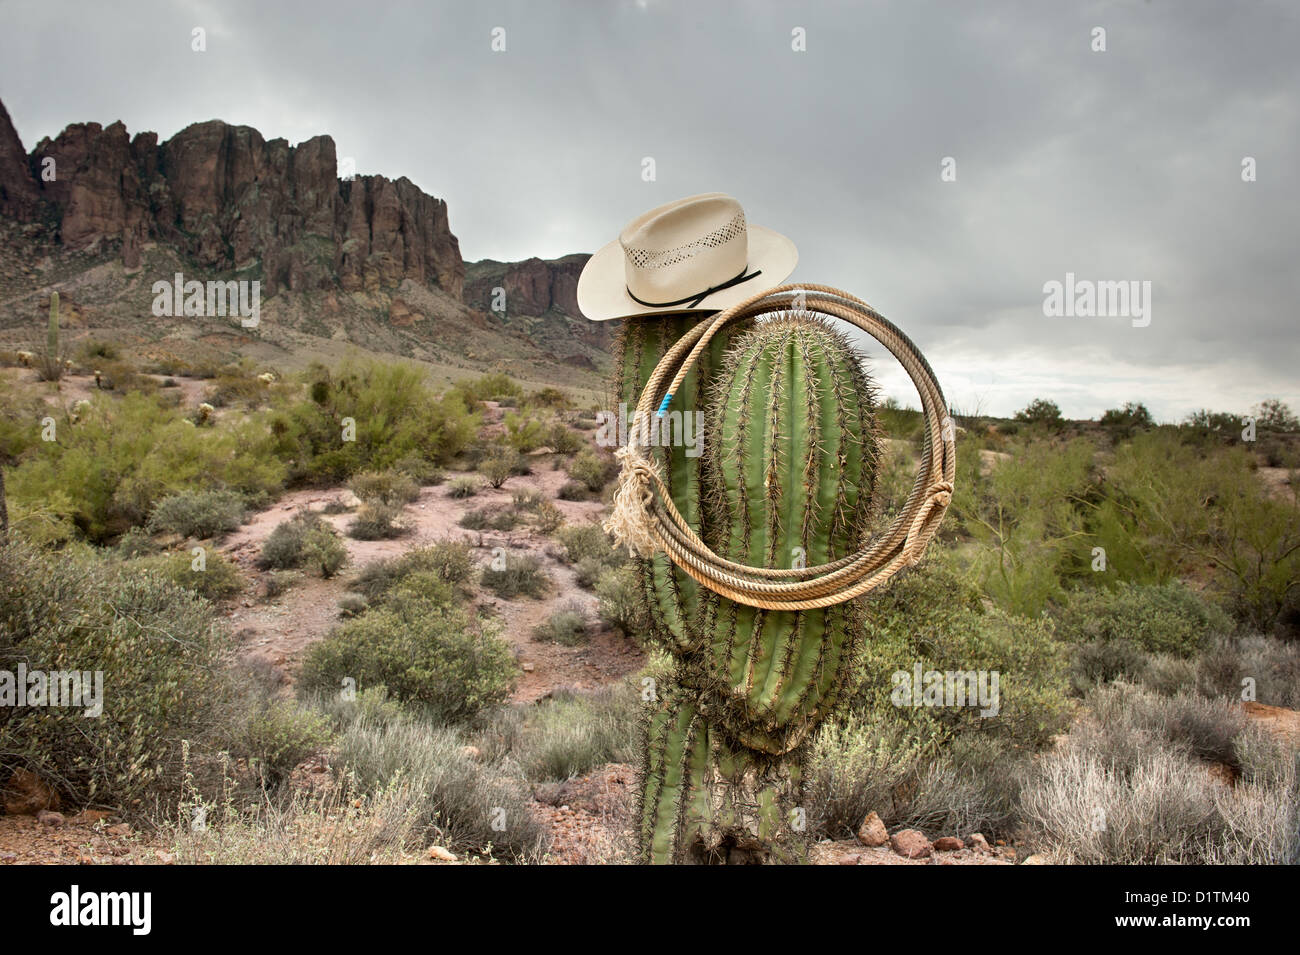 A moody image of a lasso and cowboy hat hanging on saguaro cactus in the Superstition Mountains in Arizona. - Stock Image